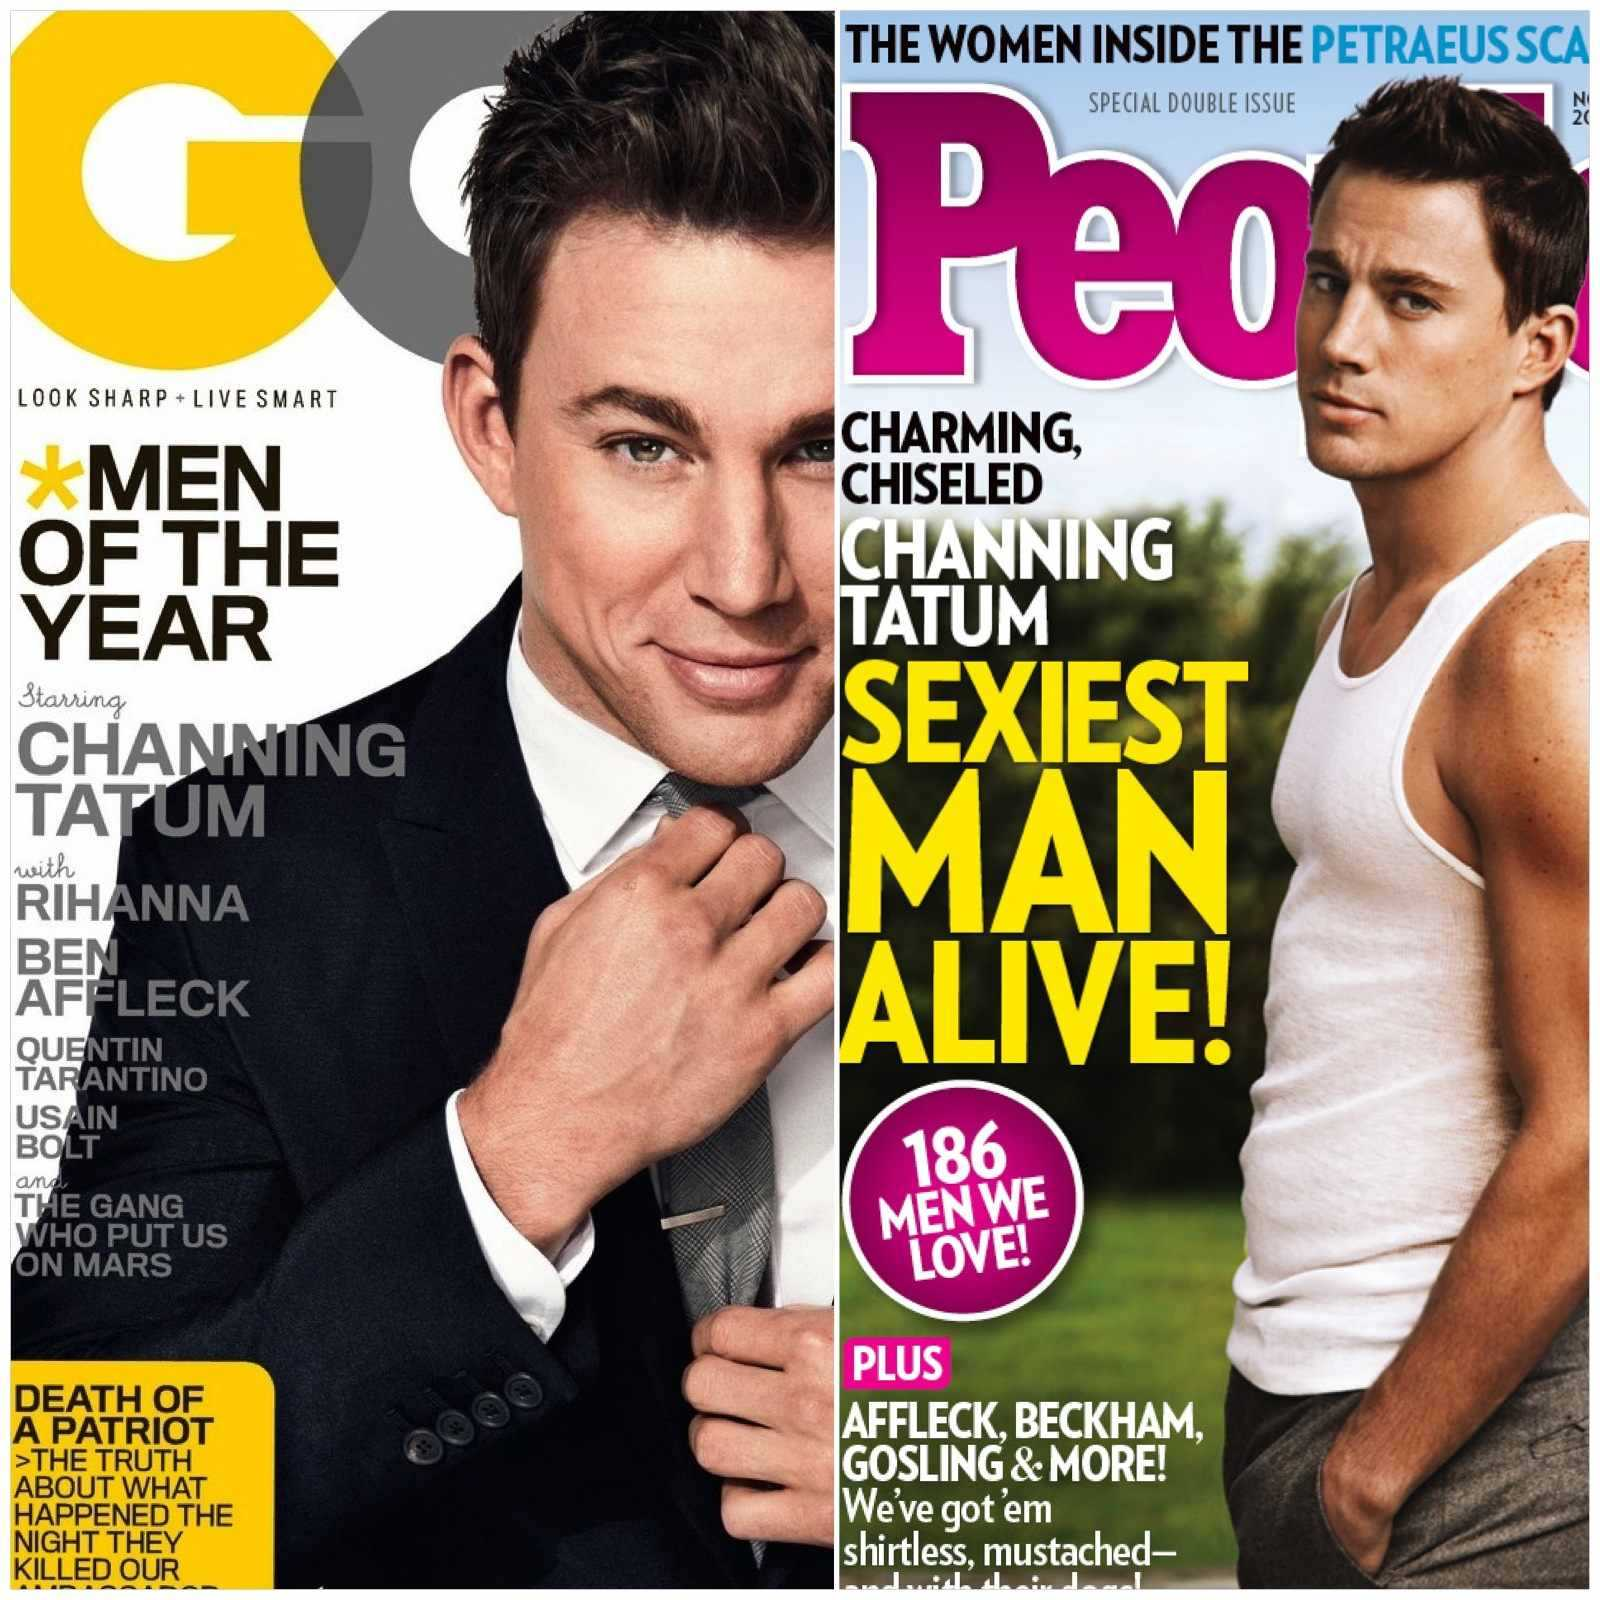 Channing Tatum Dubbed GQ&#8217;s Man of the Year &#038; People Magazine&#8217;s Sexiest Man Alive!!!